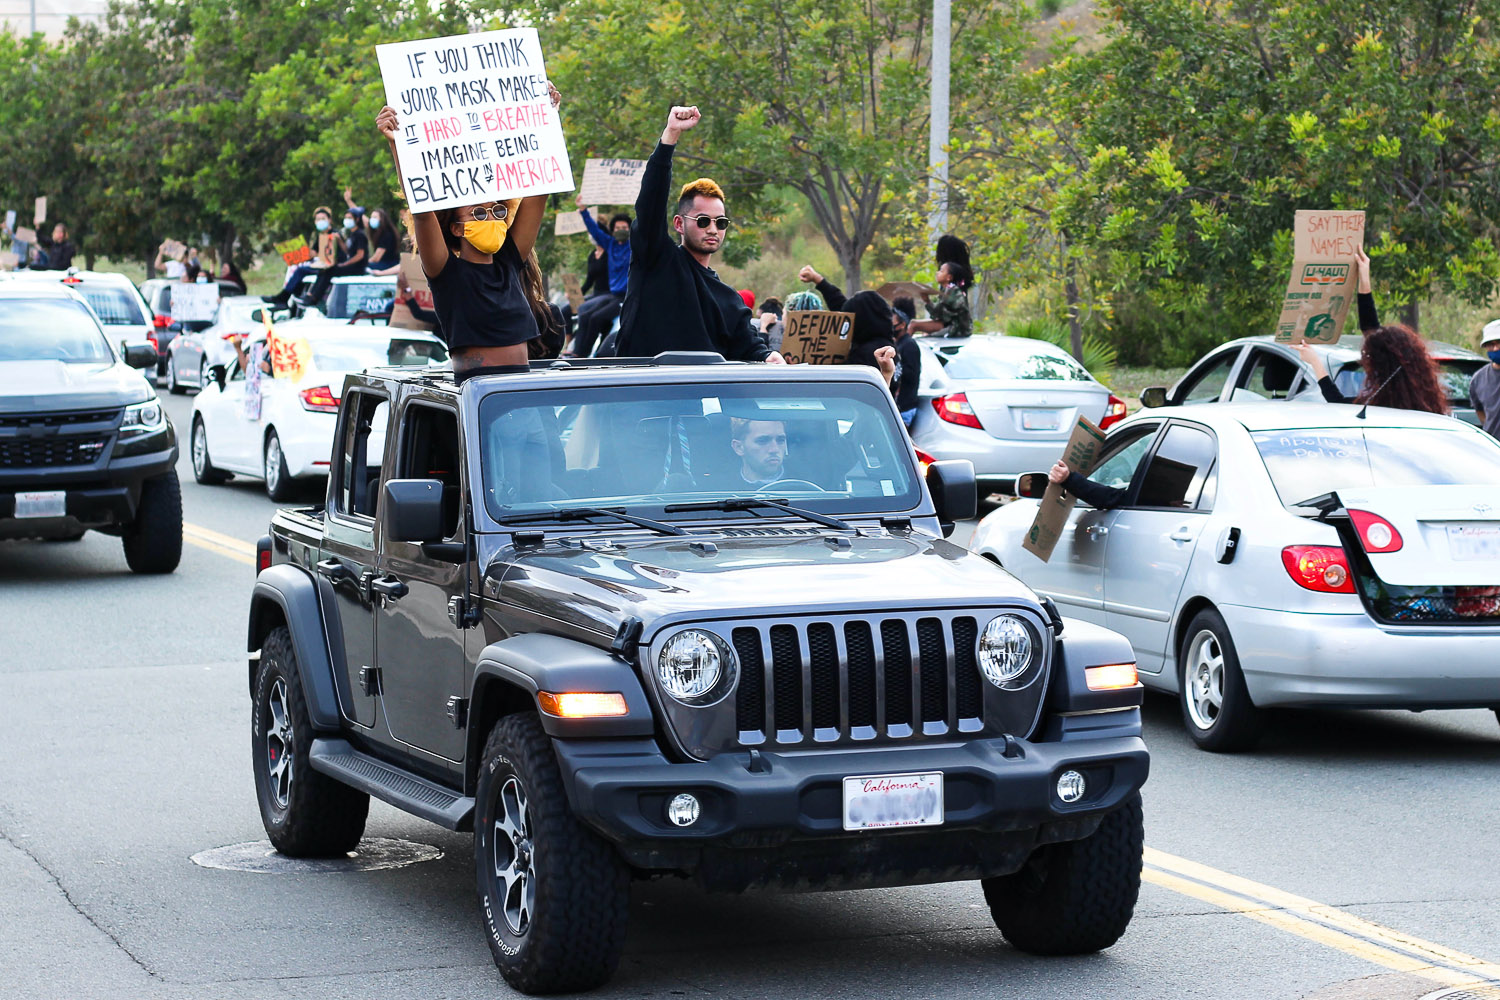 Two protesters in black Jeep